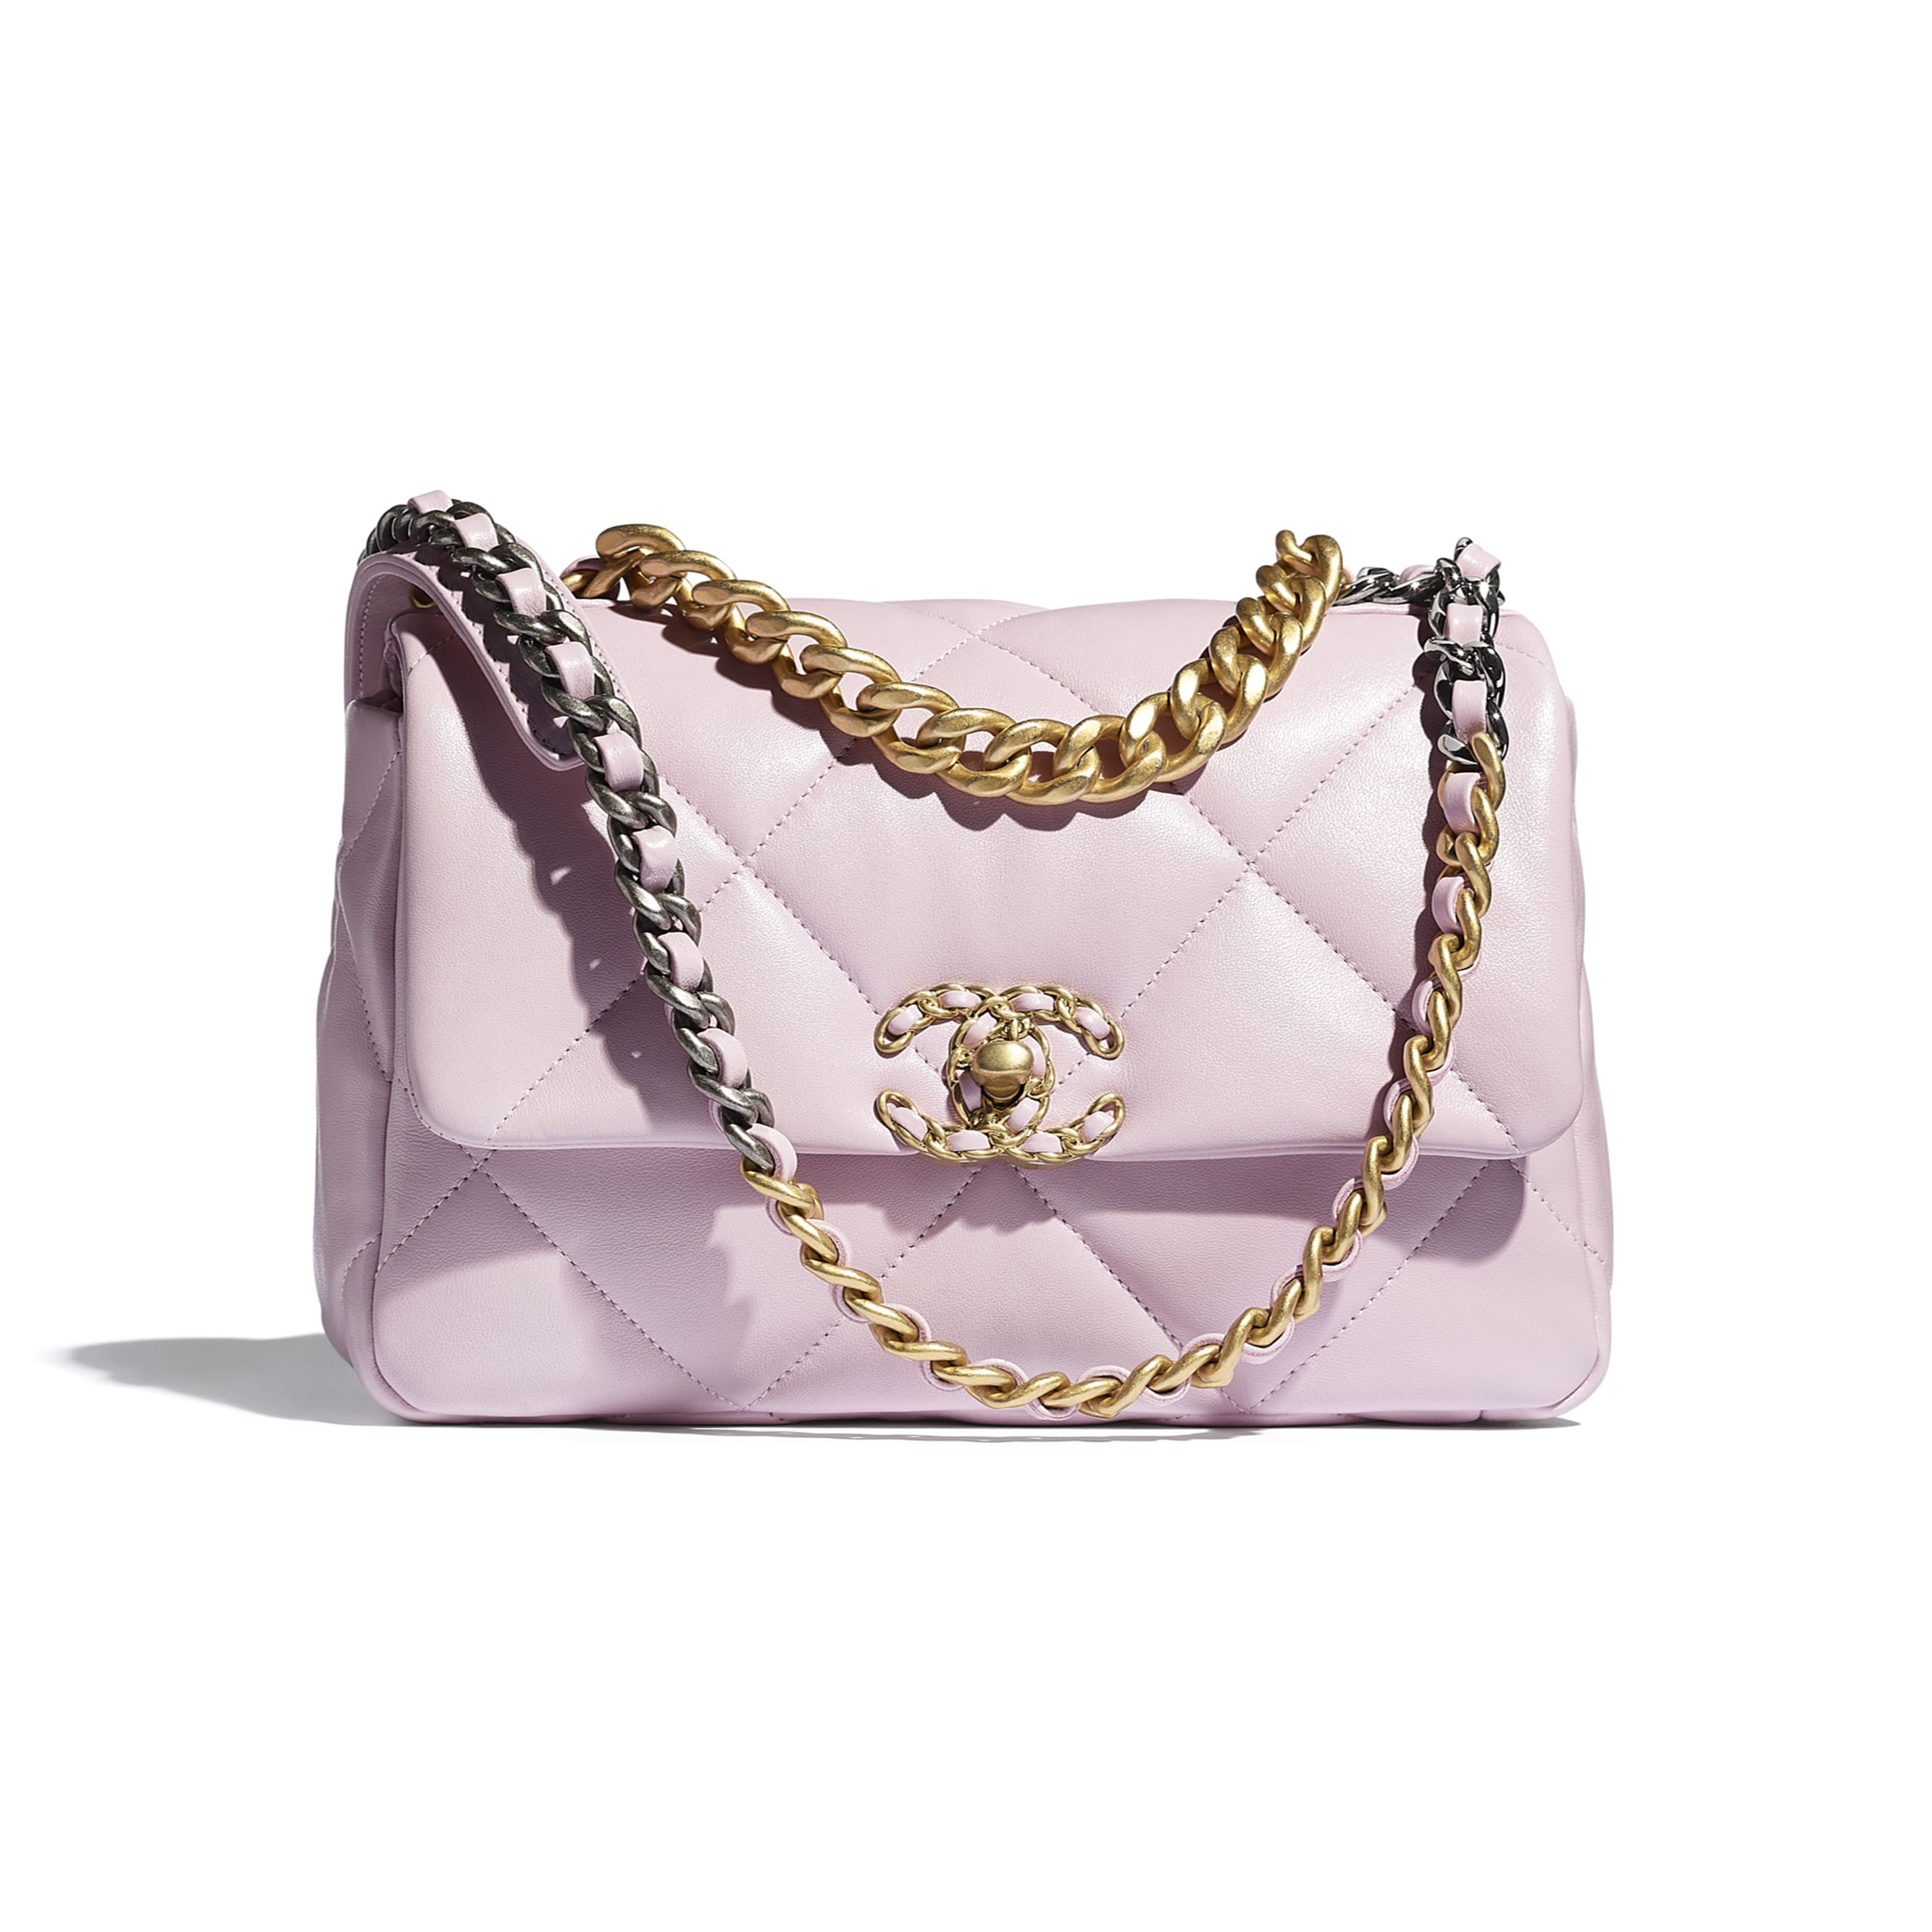 CHANEL 19 Flap Bag - Light Pink - Lambskin, Gold-Tone, Silver-Tone & Ruthenium-Finish Metal - CHANEL - Default view - see standard sized version